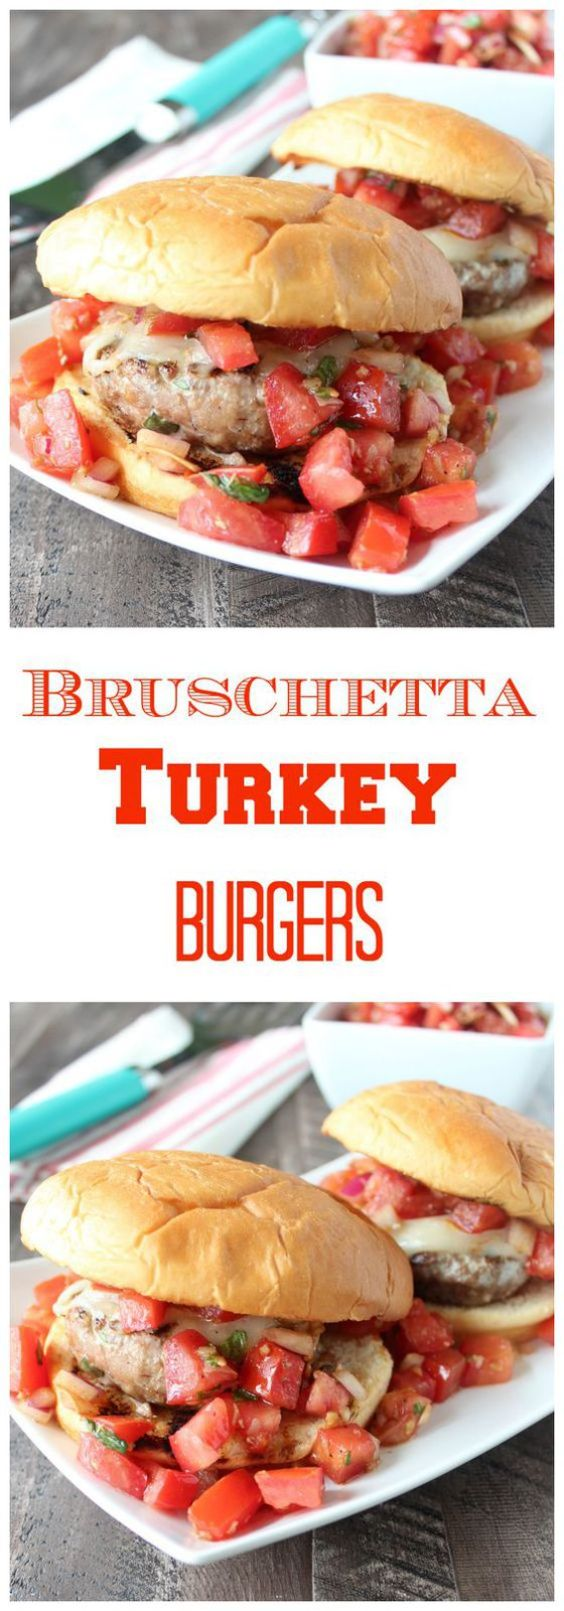 This turkey burger recipe combines the delicious ingredients of bruschetta in the burger patties, as well as in the fresh bruschetta on top!